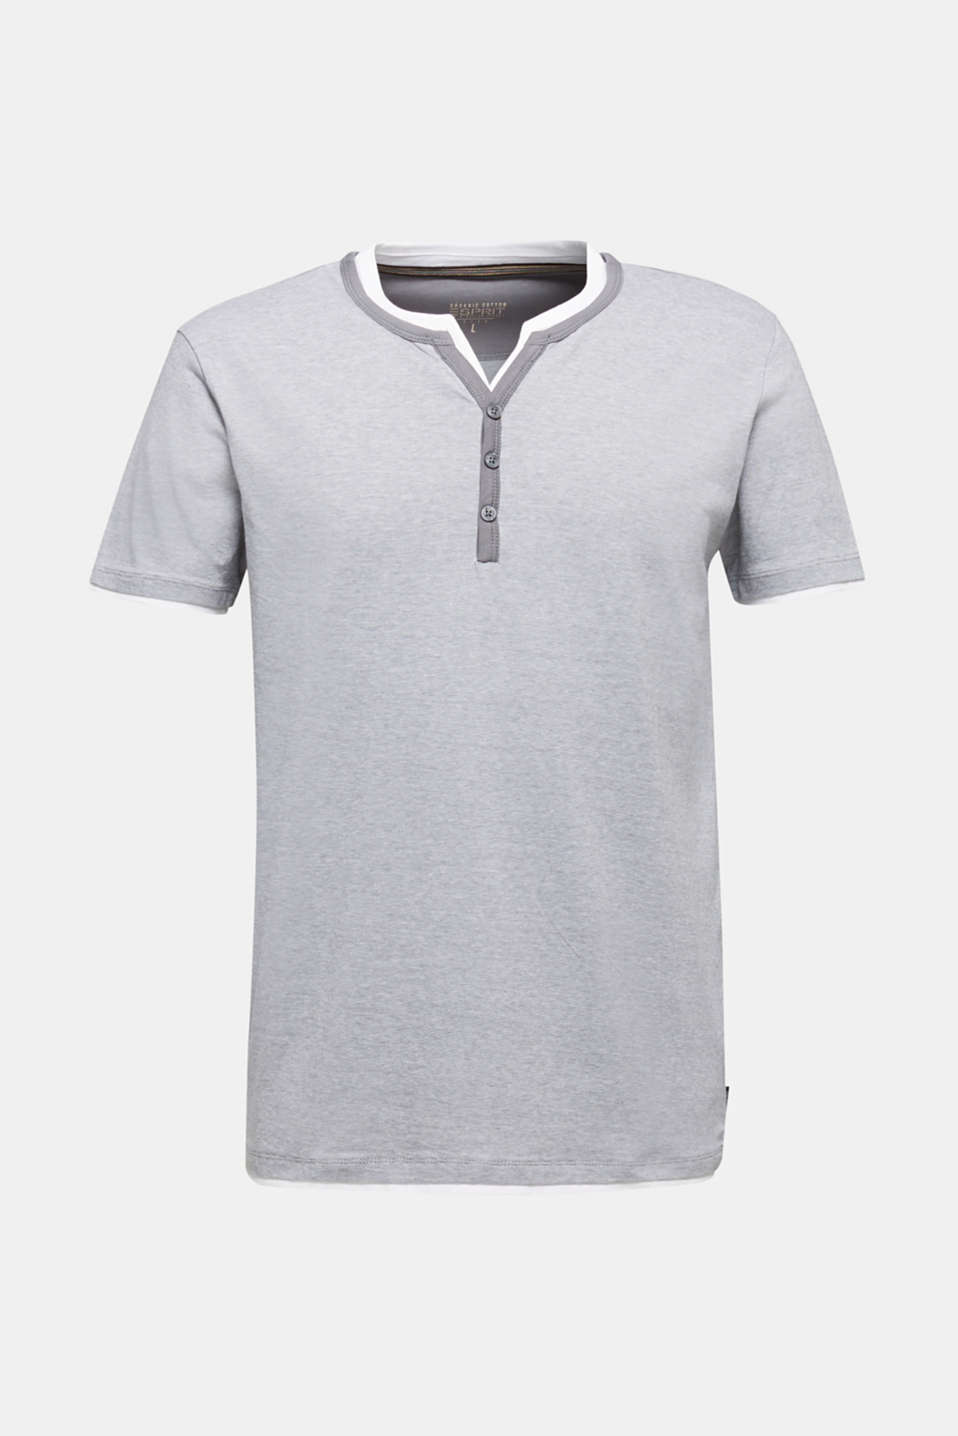 Jersey T-shirt in 100% cotton, MEDIUM GREY 3, detail image number 6